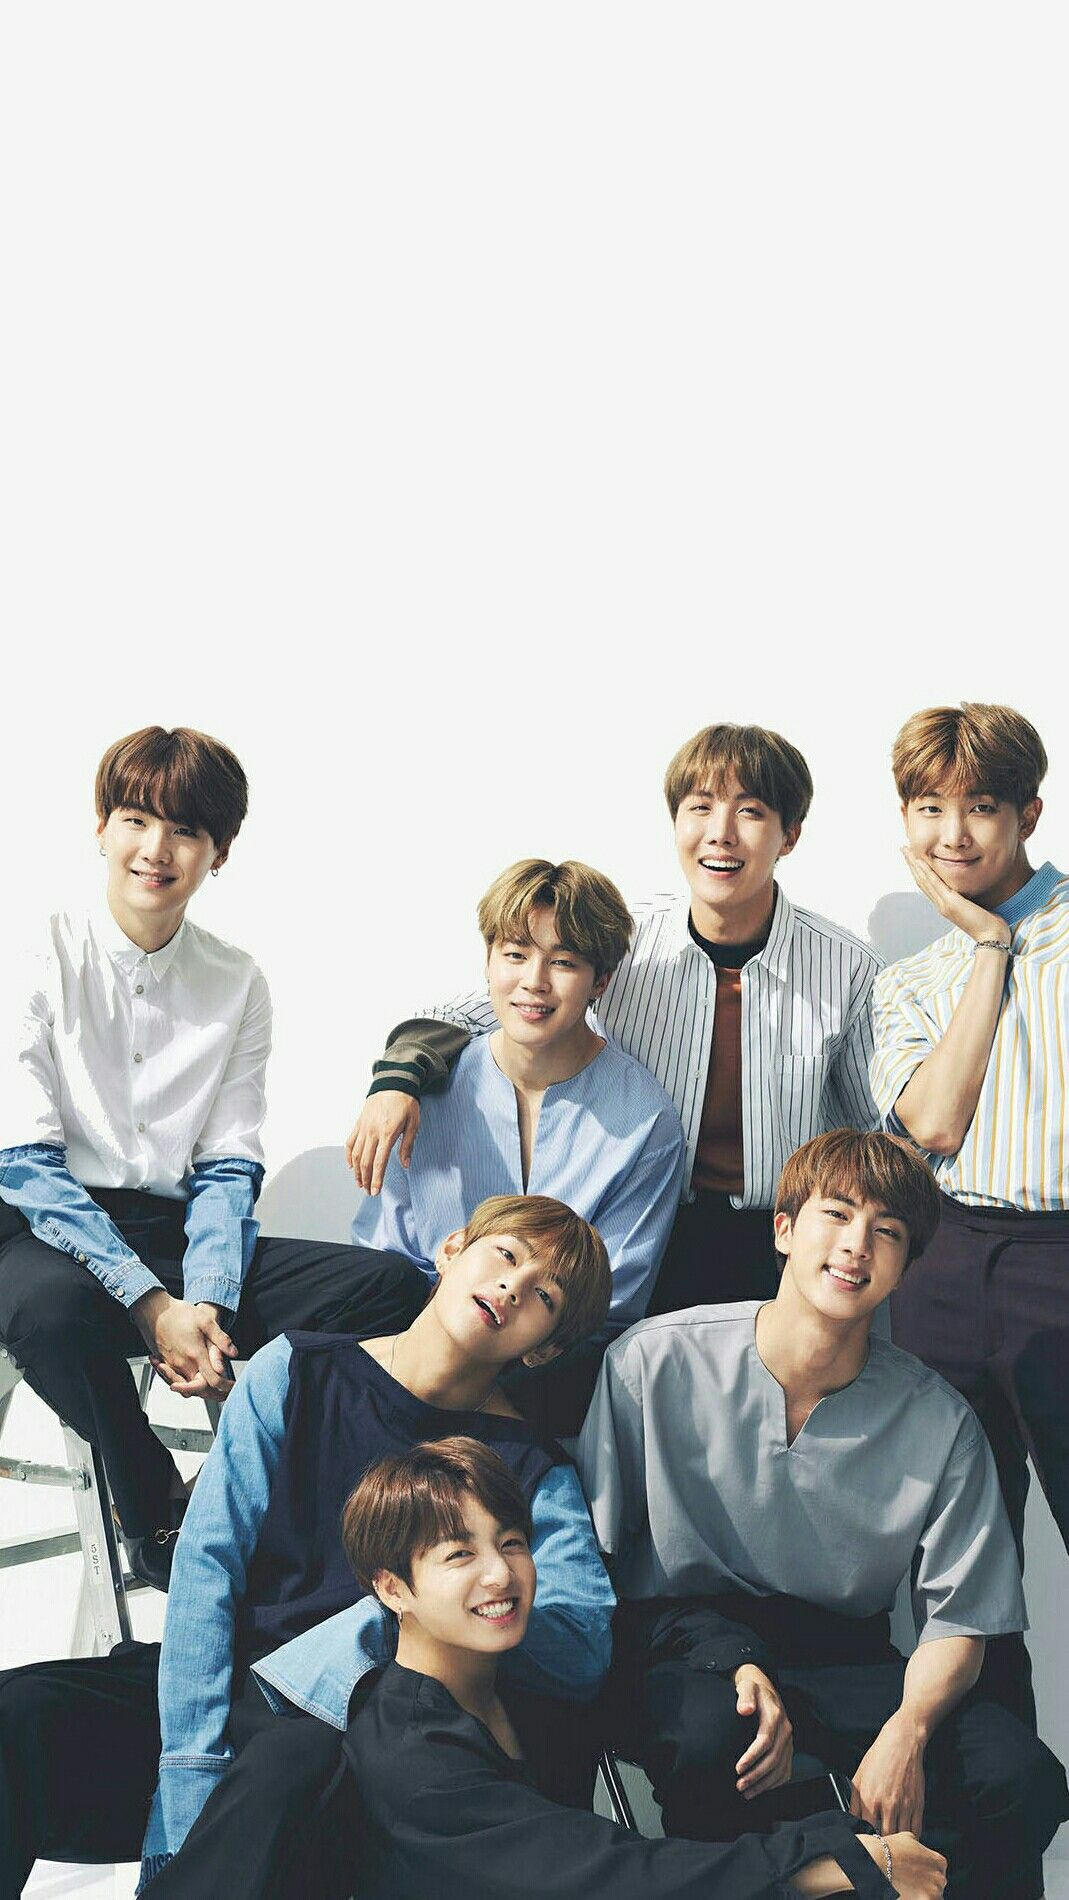 Bts wallpaper extraordinaryarmy K Pop is Life 1069x1900